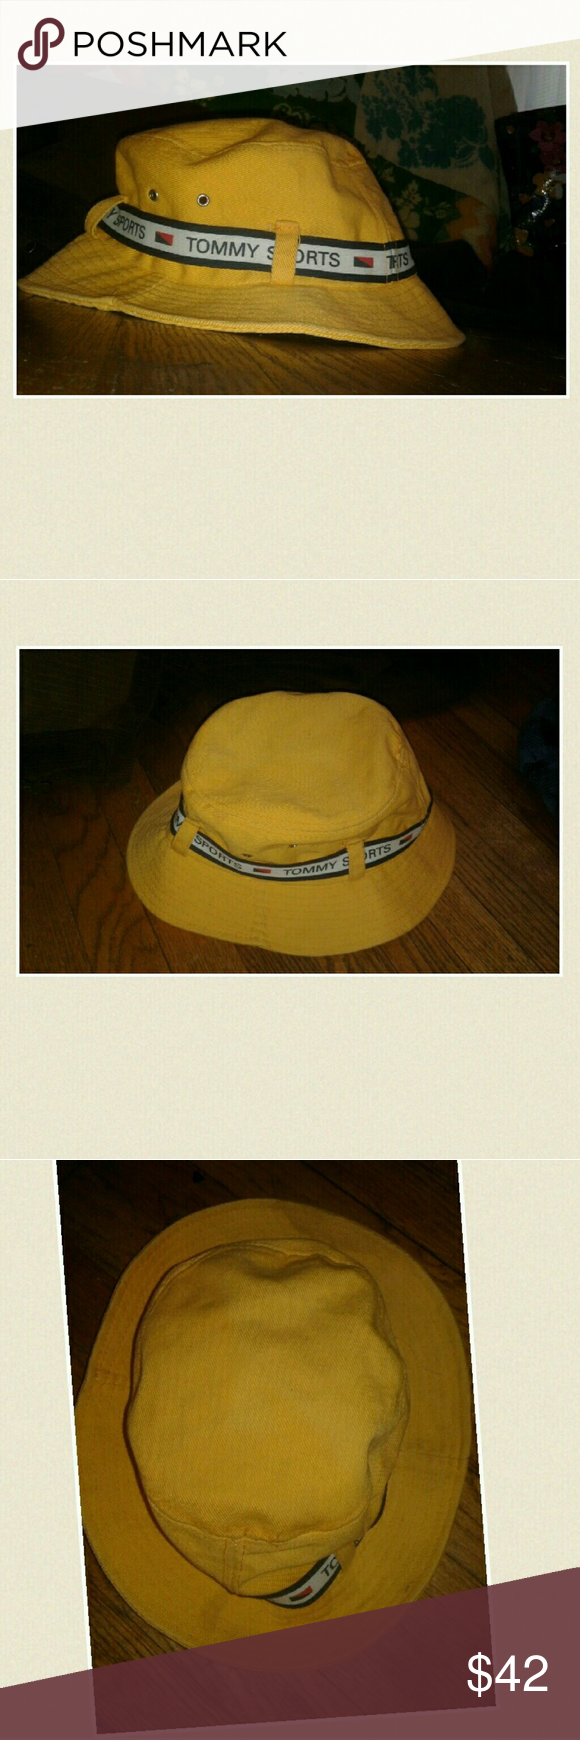 870ed9c2 Vintage Tommy Hilfiger Bucket Hat Great condition! One size fits all.  Yellow with white&navy ribbon w/